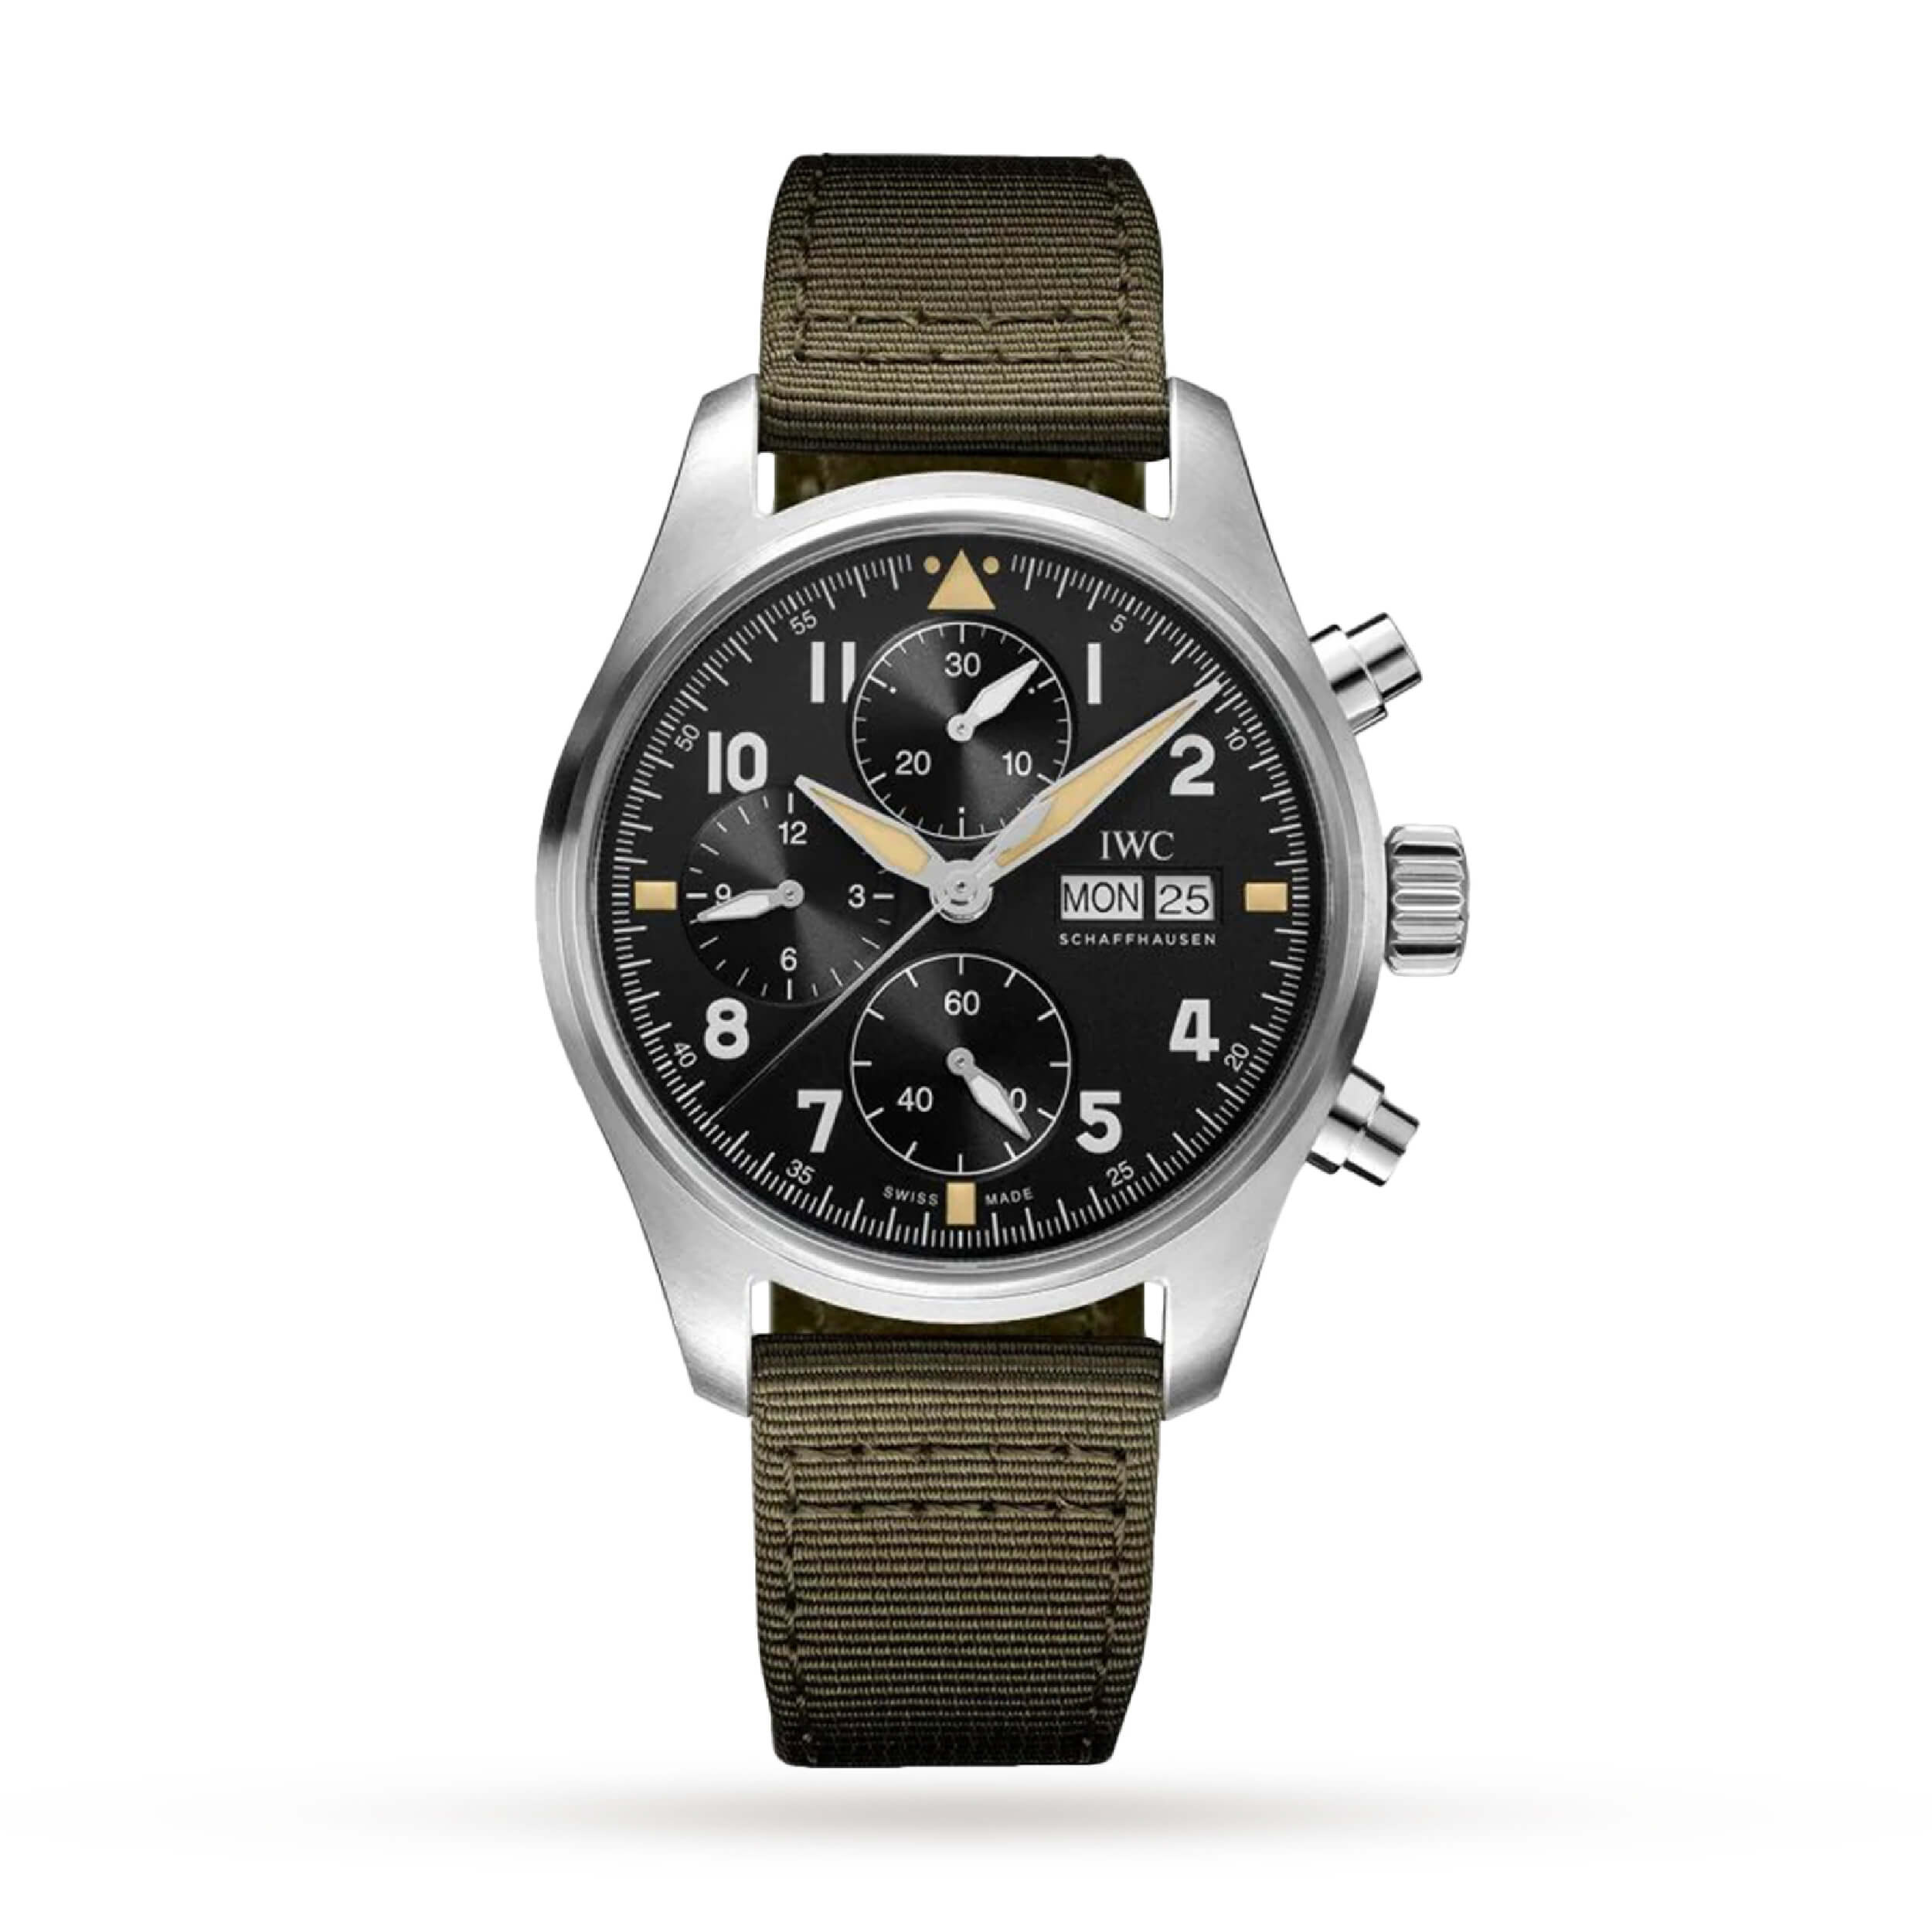 IWC Pilot's Chronograph Spitfire | Best Luxury Chronograph Watches 2021